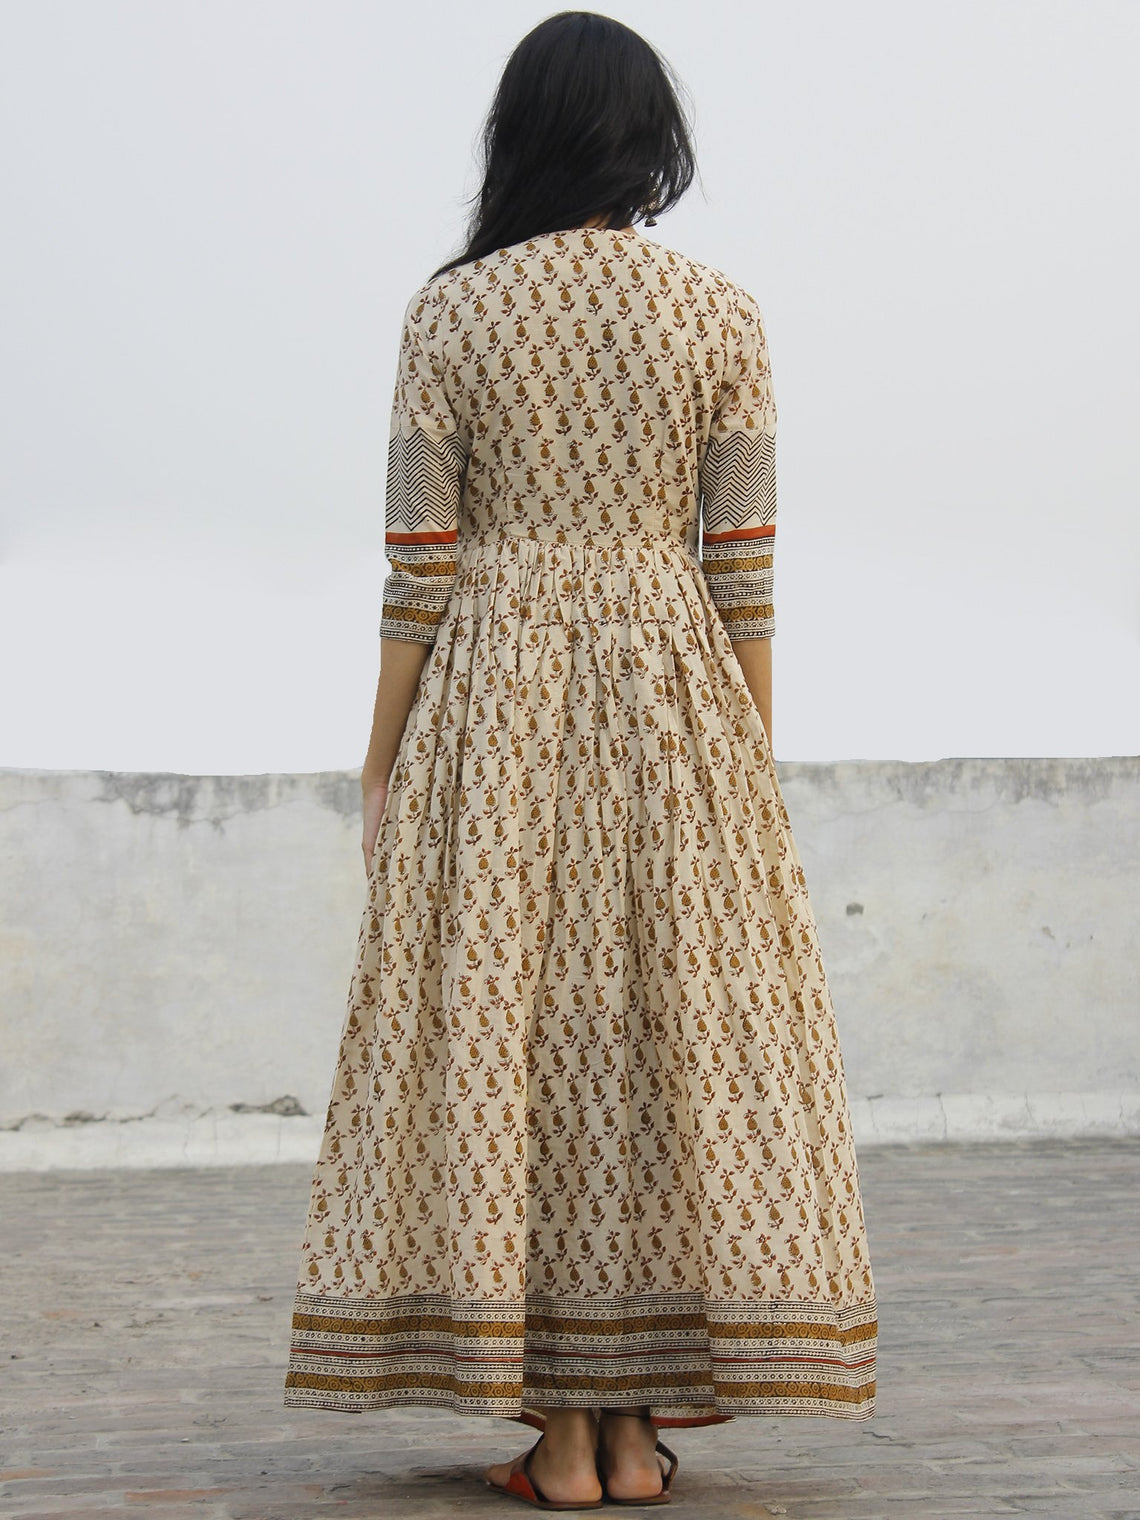 Naaz Block Charm - Hand Block Printed Angrakha Dress With Gathers -  DS11F003